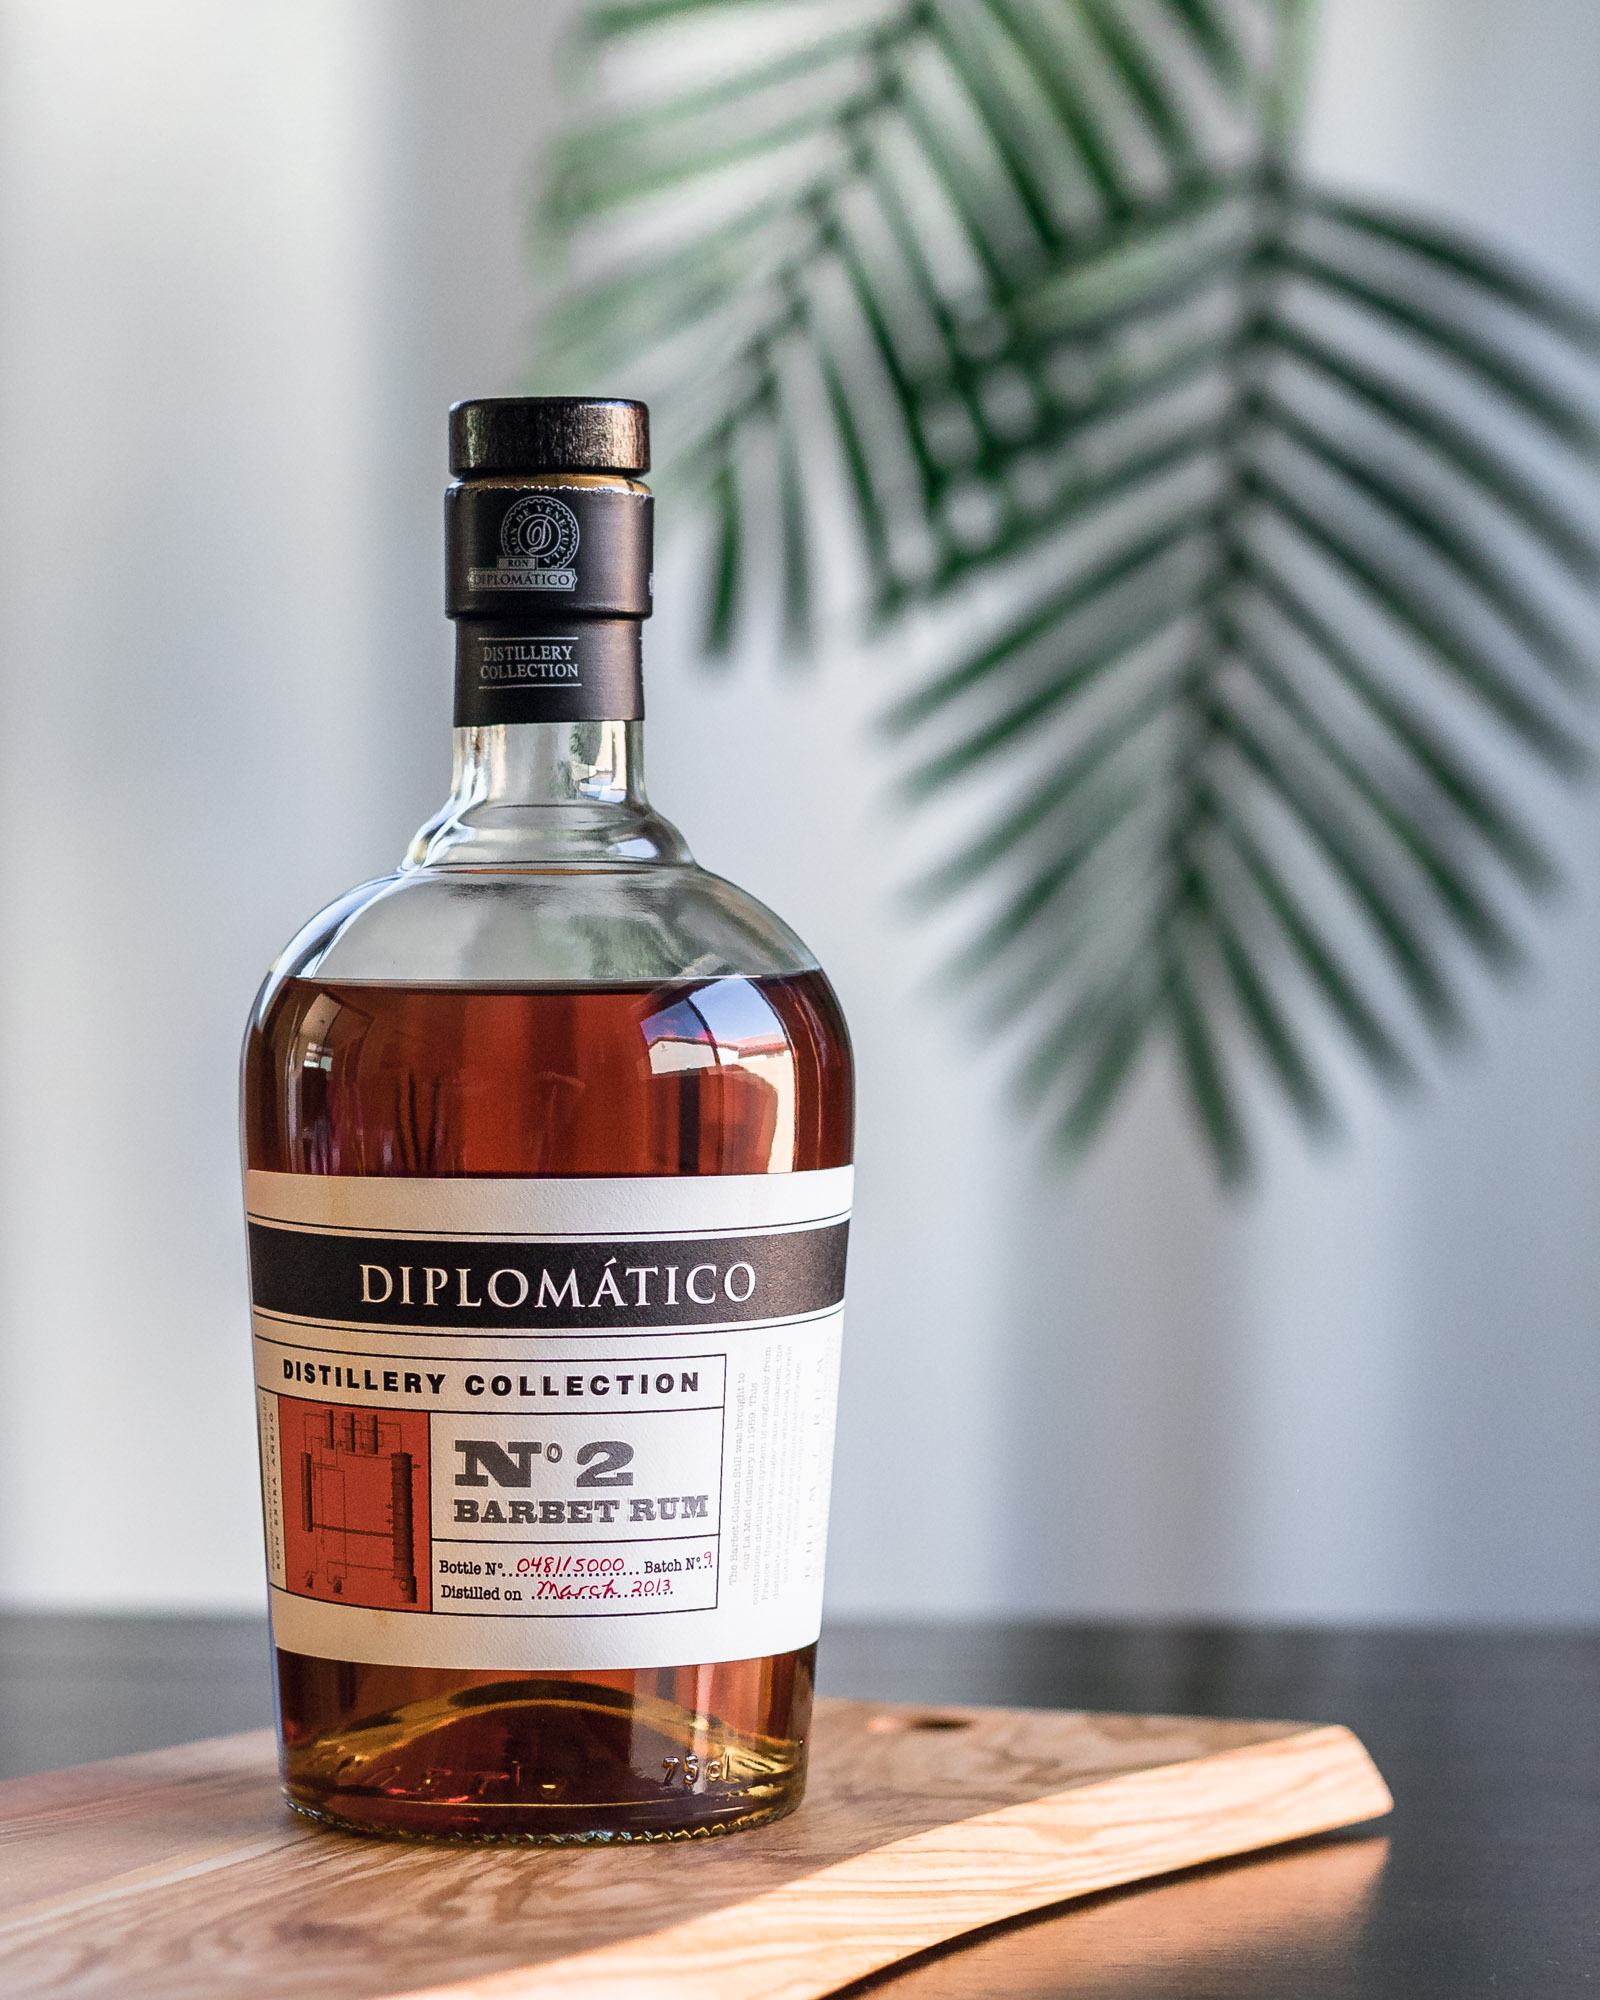 Diplomatico Rum – Barbet No. 2 Limited Edition